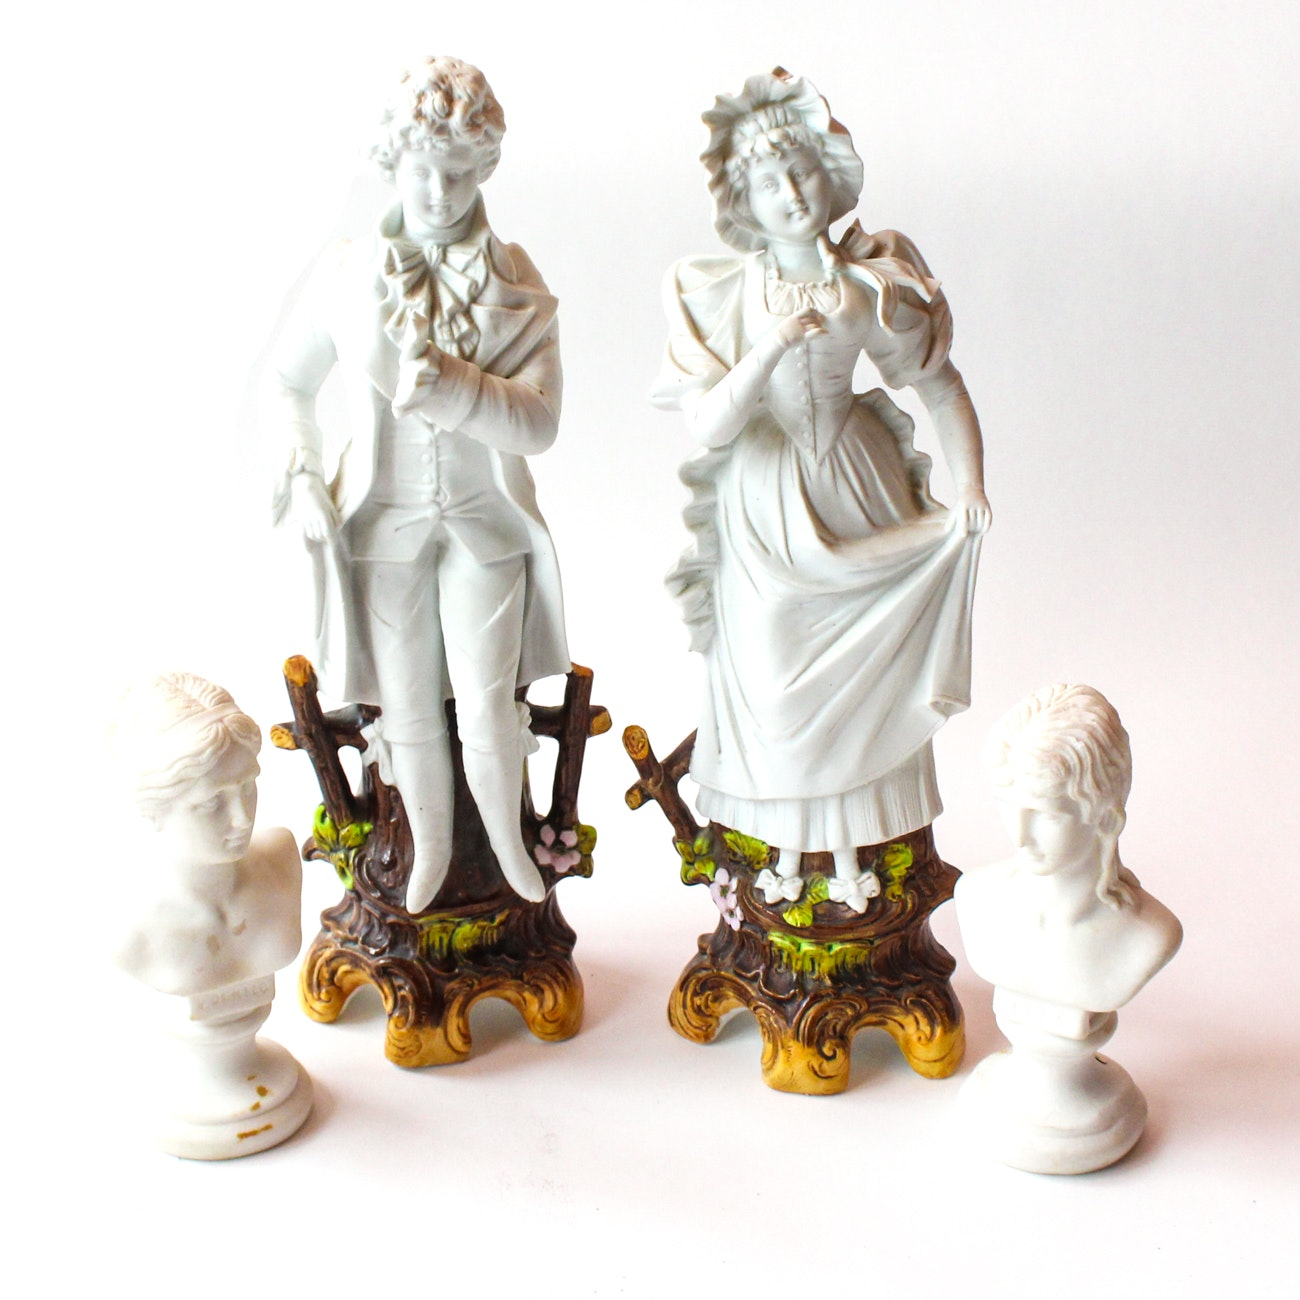 Porcelain Figurines Featuring Signed Italian Busts